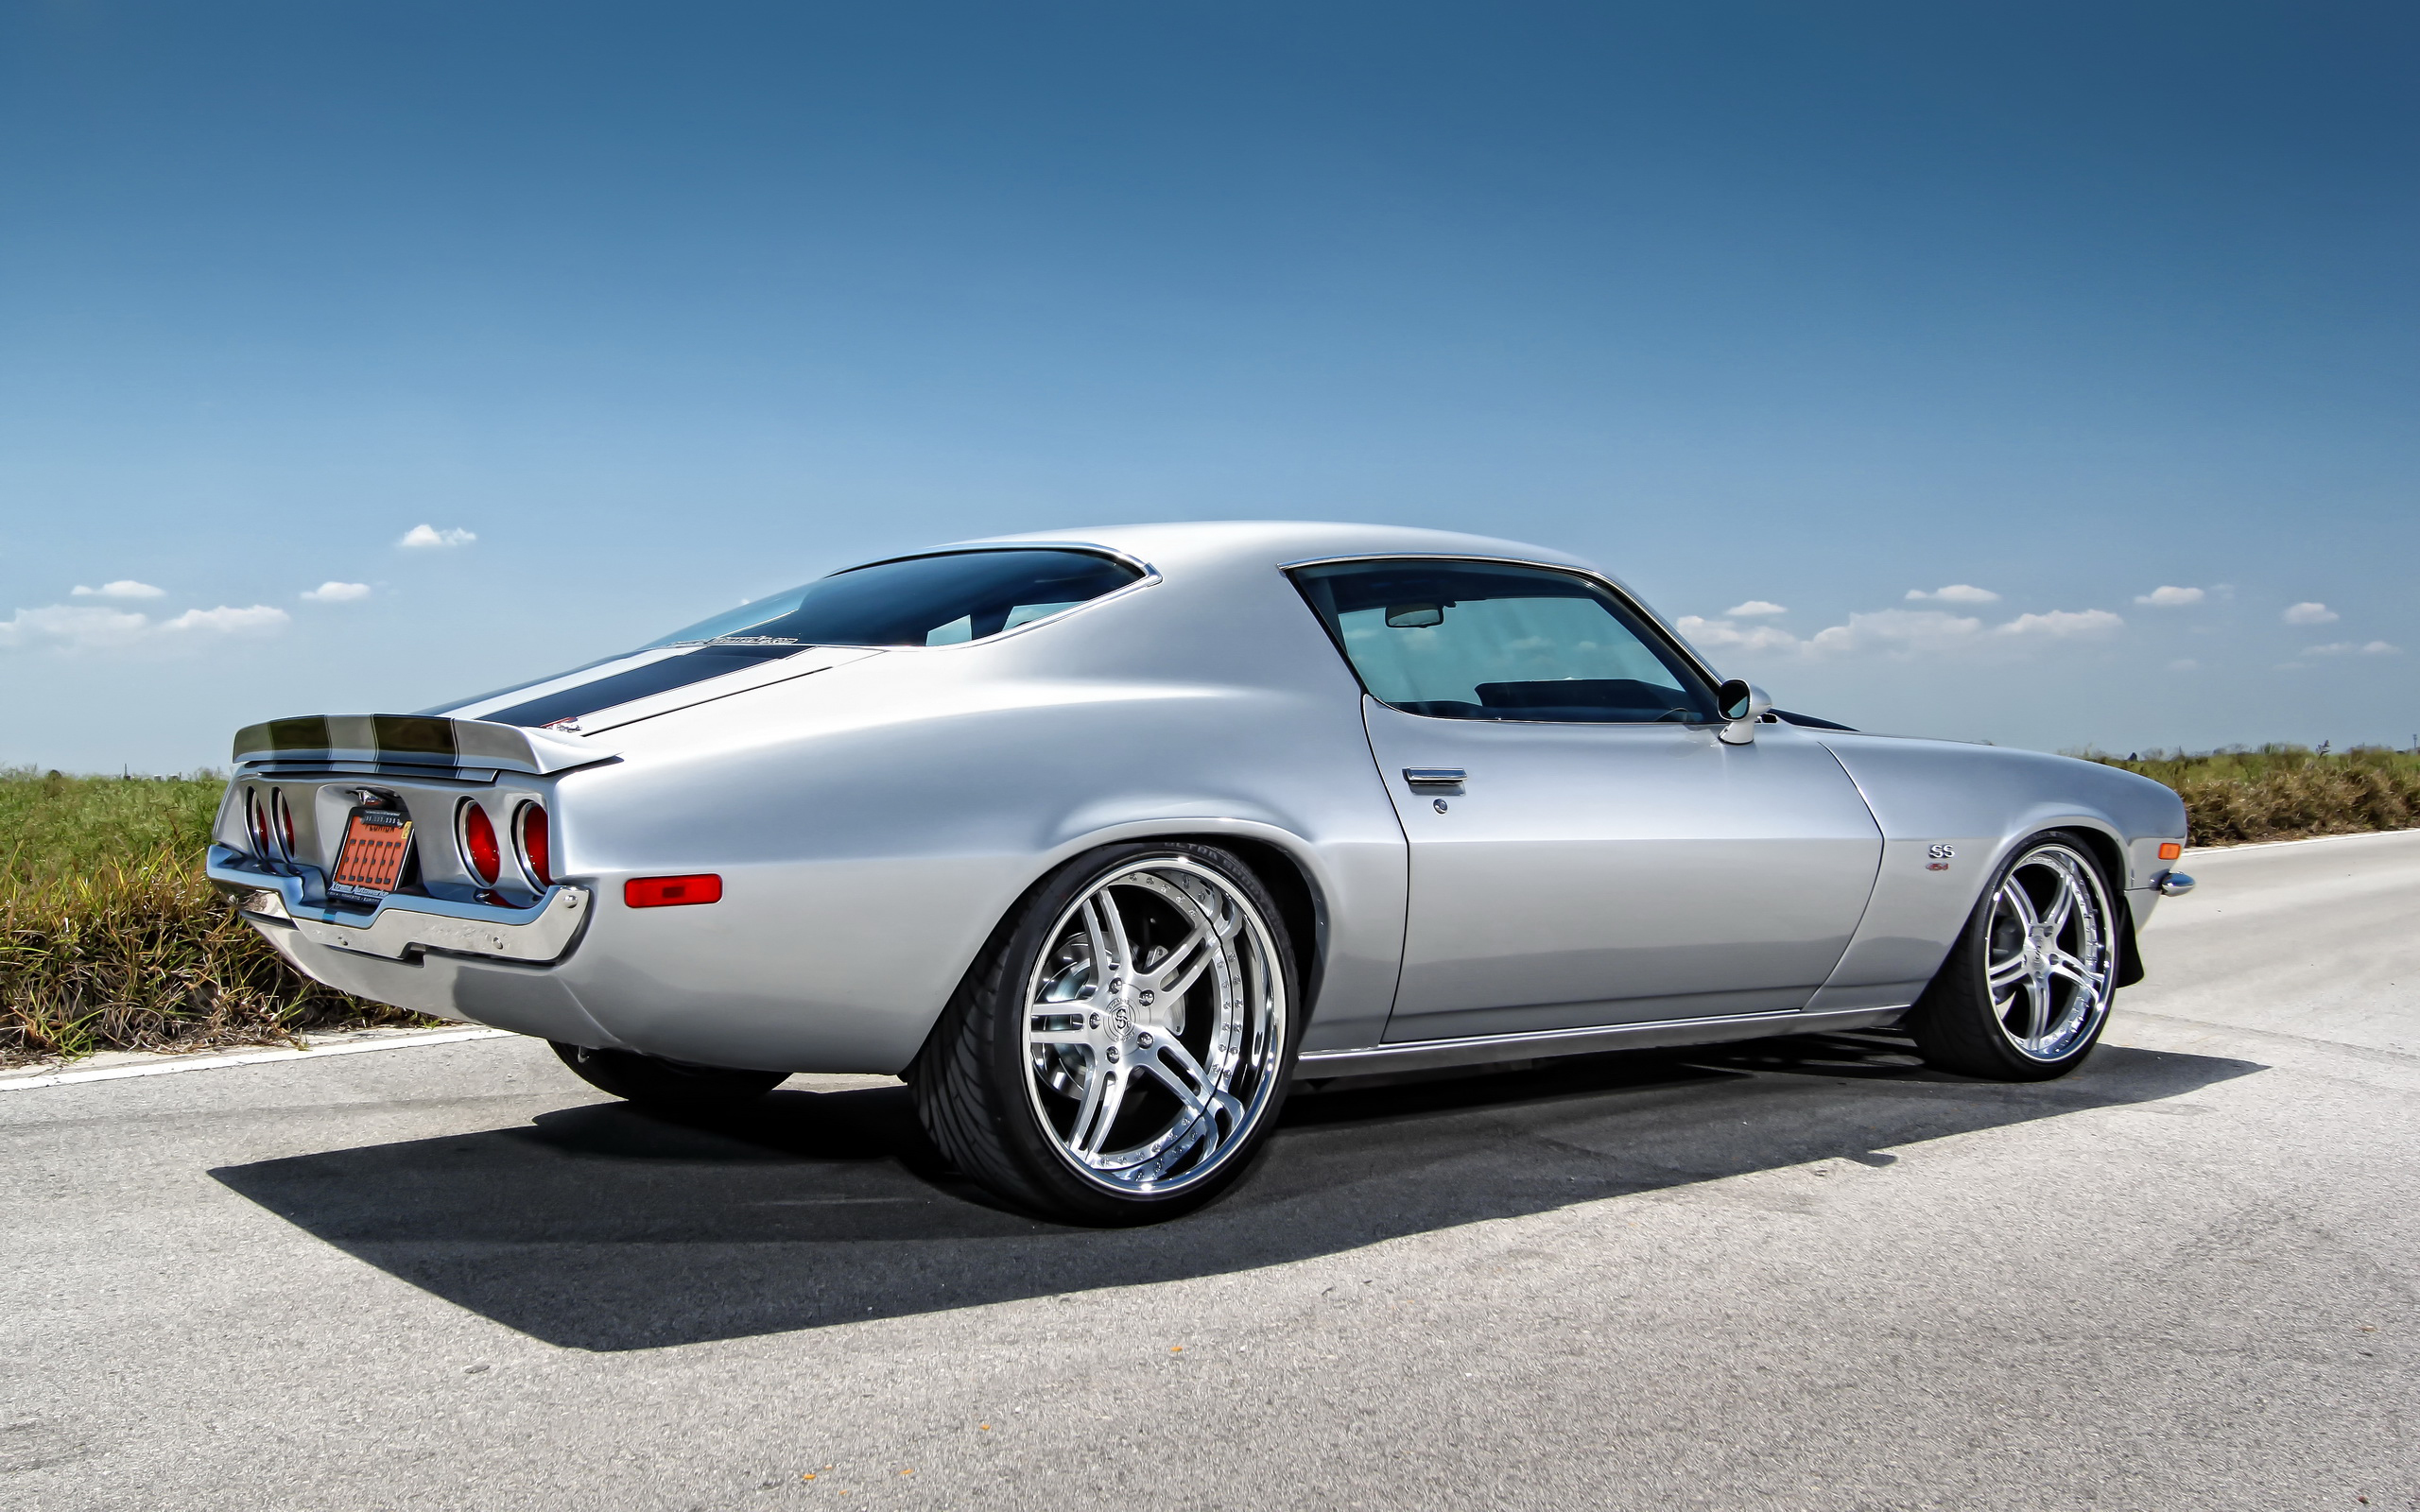 Chevrolet Camaro Chevrolet muscle car hot rods wallpaper 2560x1600 2560x1600